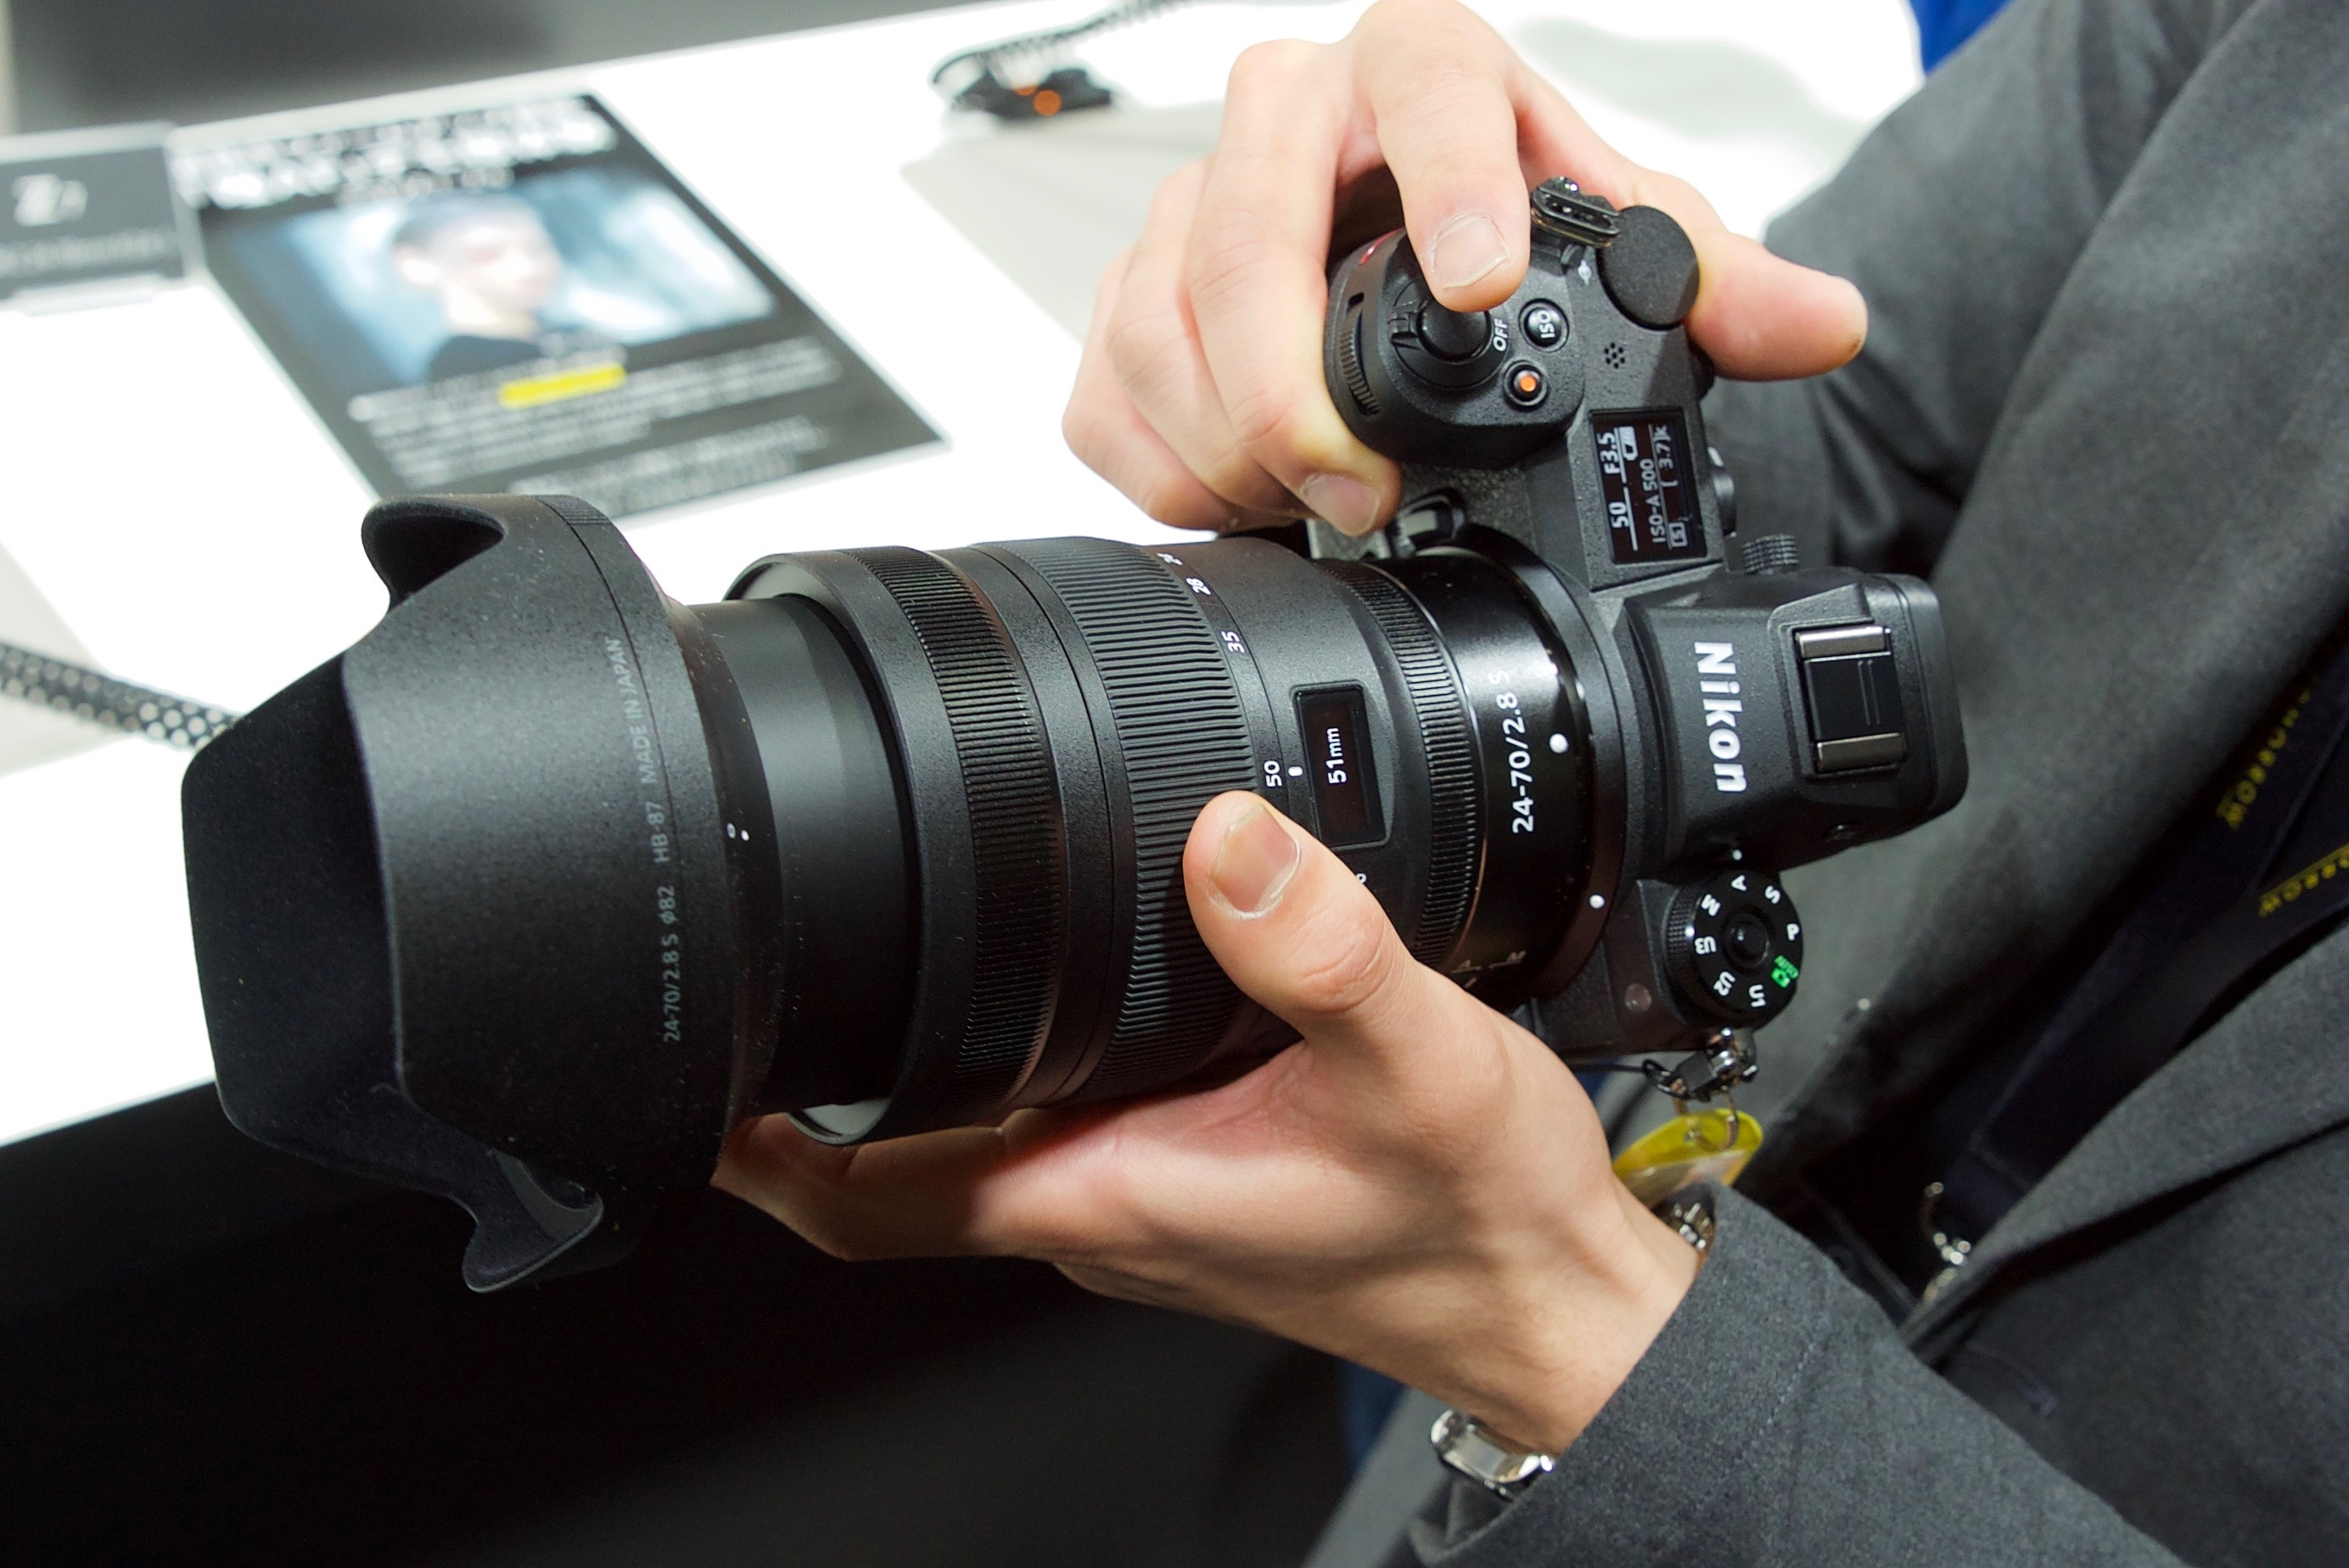 First Look at the new Eye AF for the Nikon Z6 & Z7